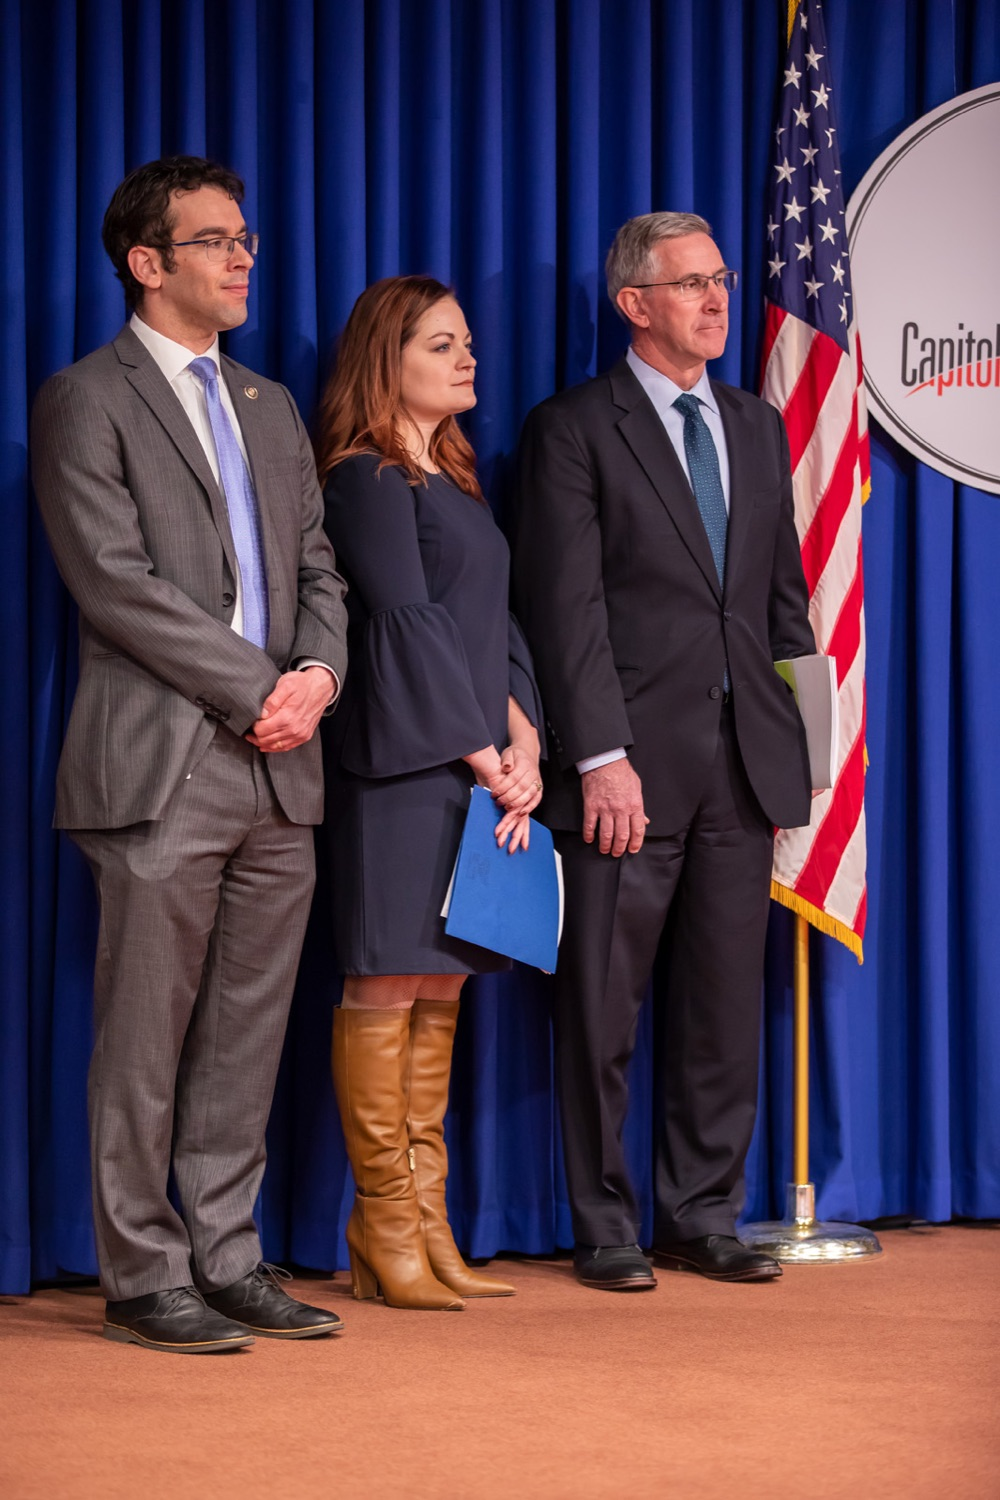 """<a href=""""http://filesource.abacast.com/commonwealthofpa/photo/17711_DHS_SuicidePrevention_AG_15.jpg"""" target=""""_blank"""">⇣Download Photo<br></a>Harrisburg, PA.  (left to right) PA Rep. Michael Schlossberg, Caitlin Palmer and Secretary of Agriculture Russell Redding were in attendance at todays event discussing the initial report of Pennsylvanias Suicide Prevention Task Force based on the statewide listening sessions held throughout fall 2019. The work of the Suicide Prevention Task Force is a complement to the goals and strategies surrounding the governors Reach Out PA: Your Mental Health Matters initiative announced earlier this month and his Executive Order to protect vulnerable populations signed last year.  January 14, 2020."""